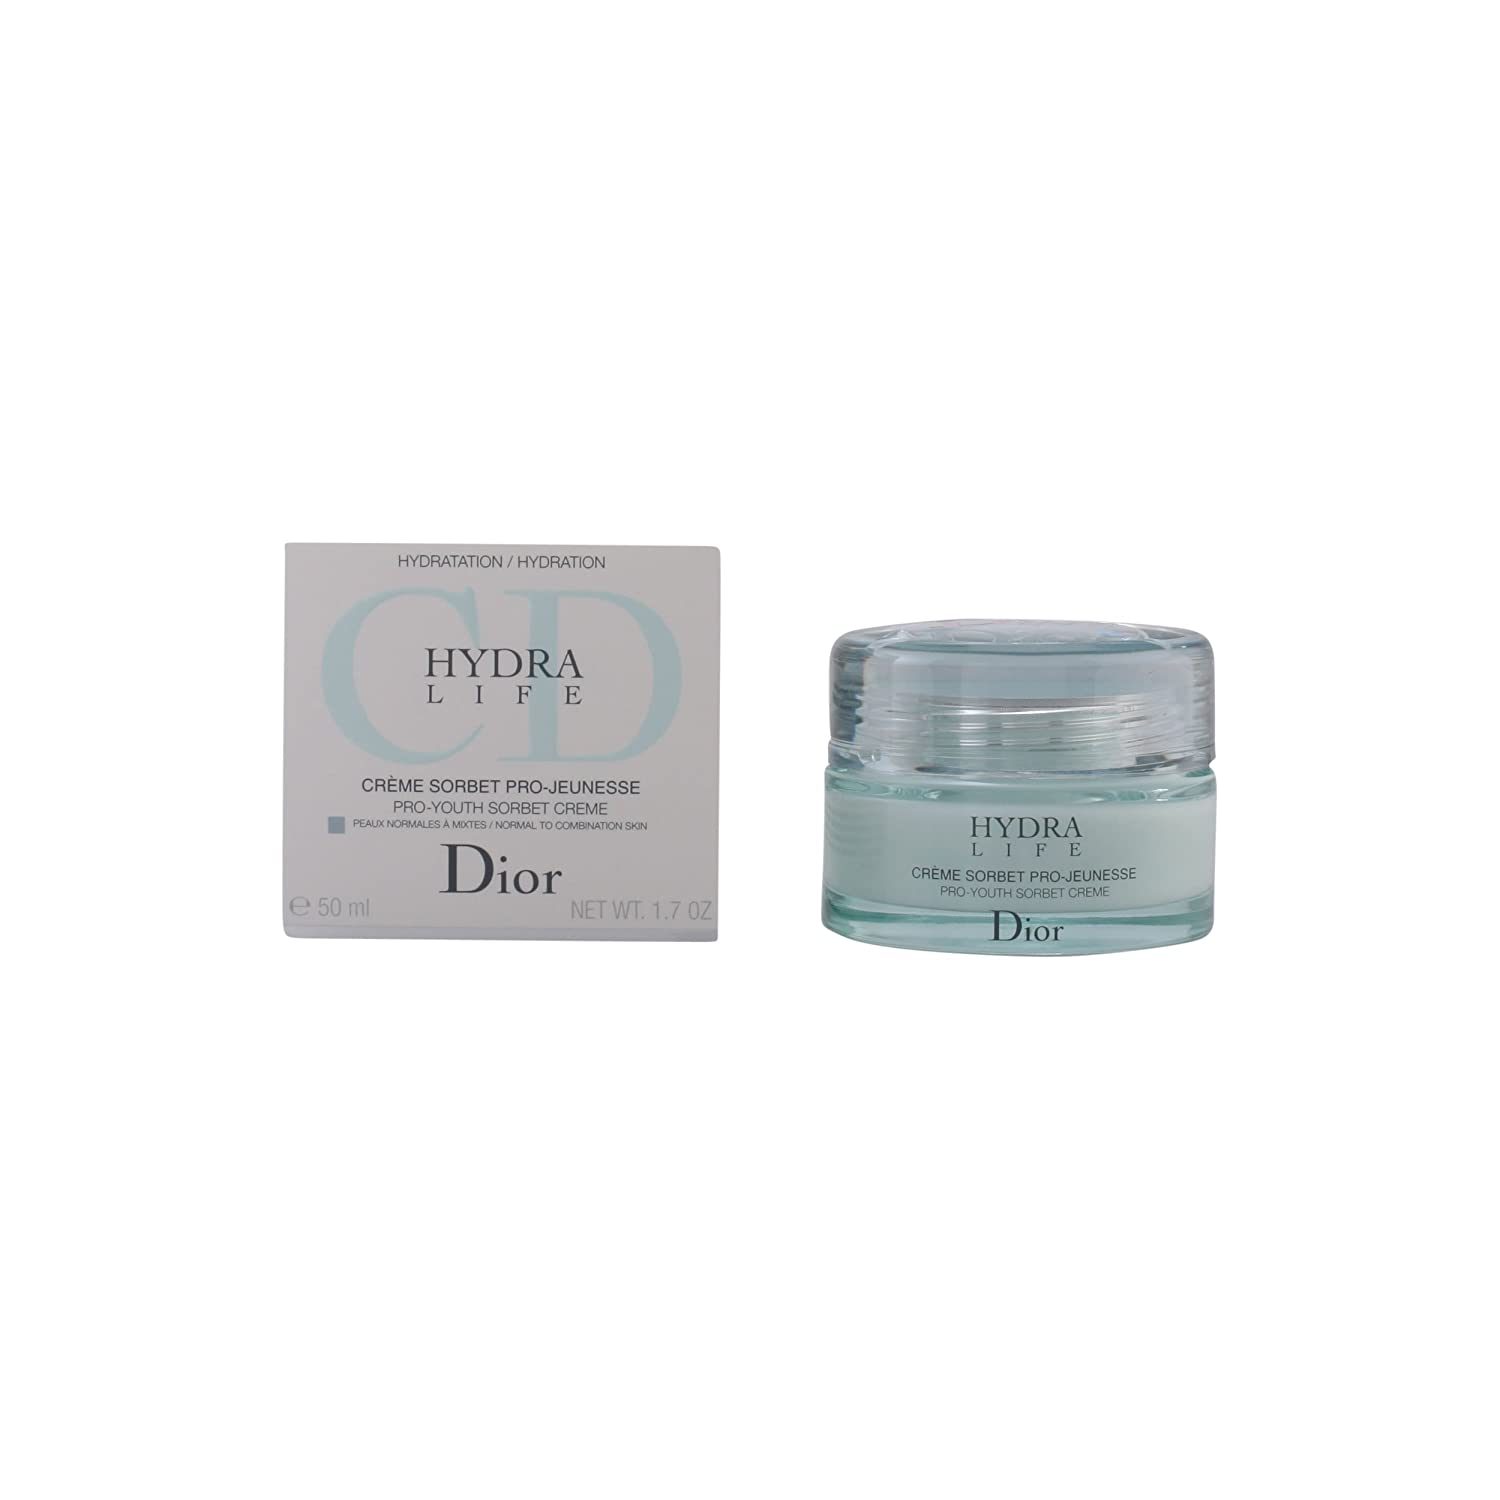 Hydra Life Pro-Youth Comfort Cream by Dior #5